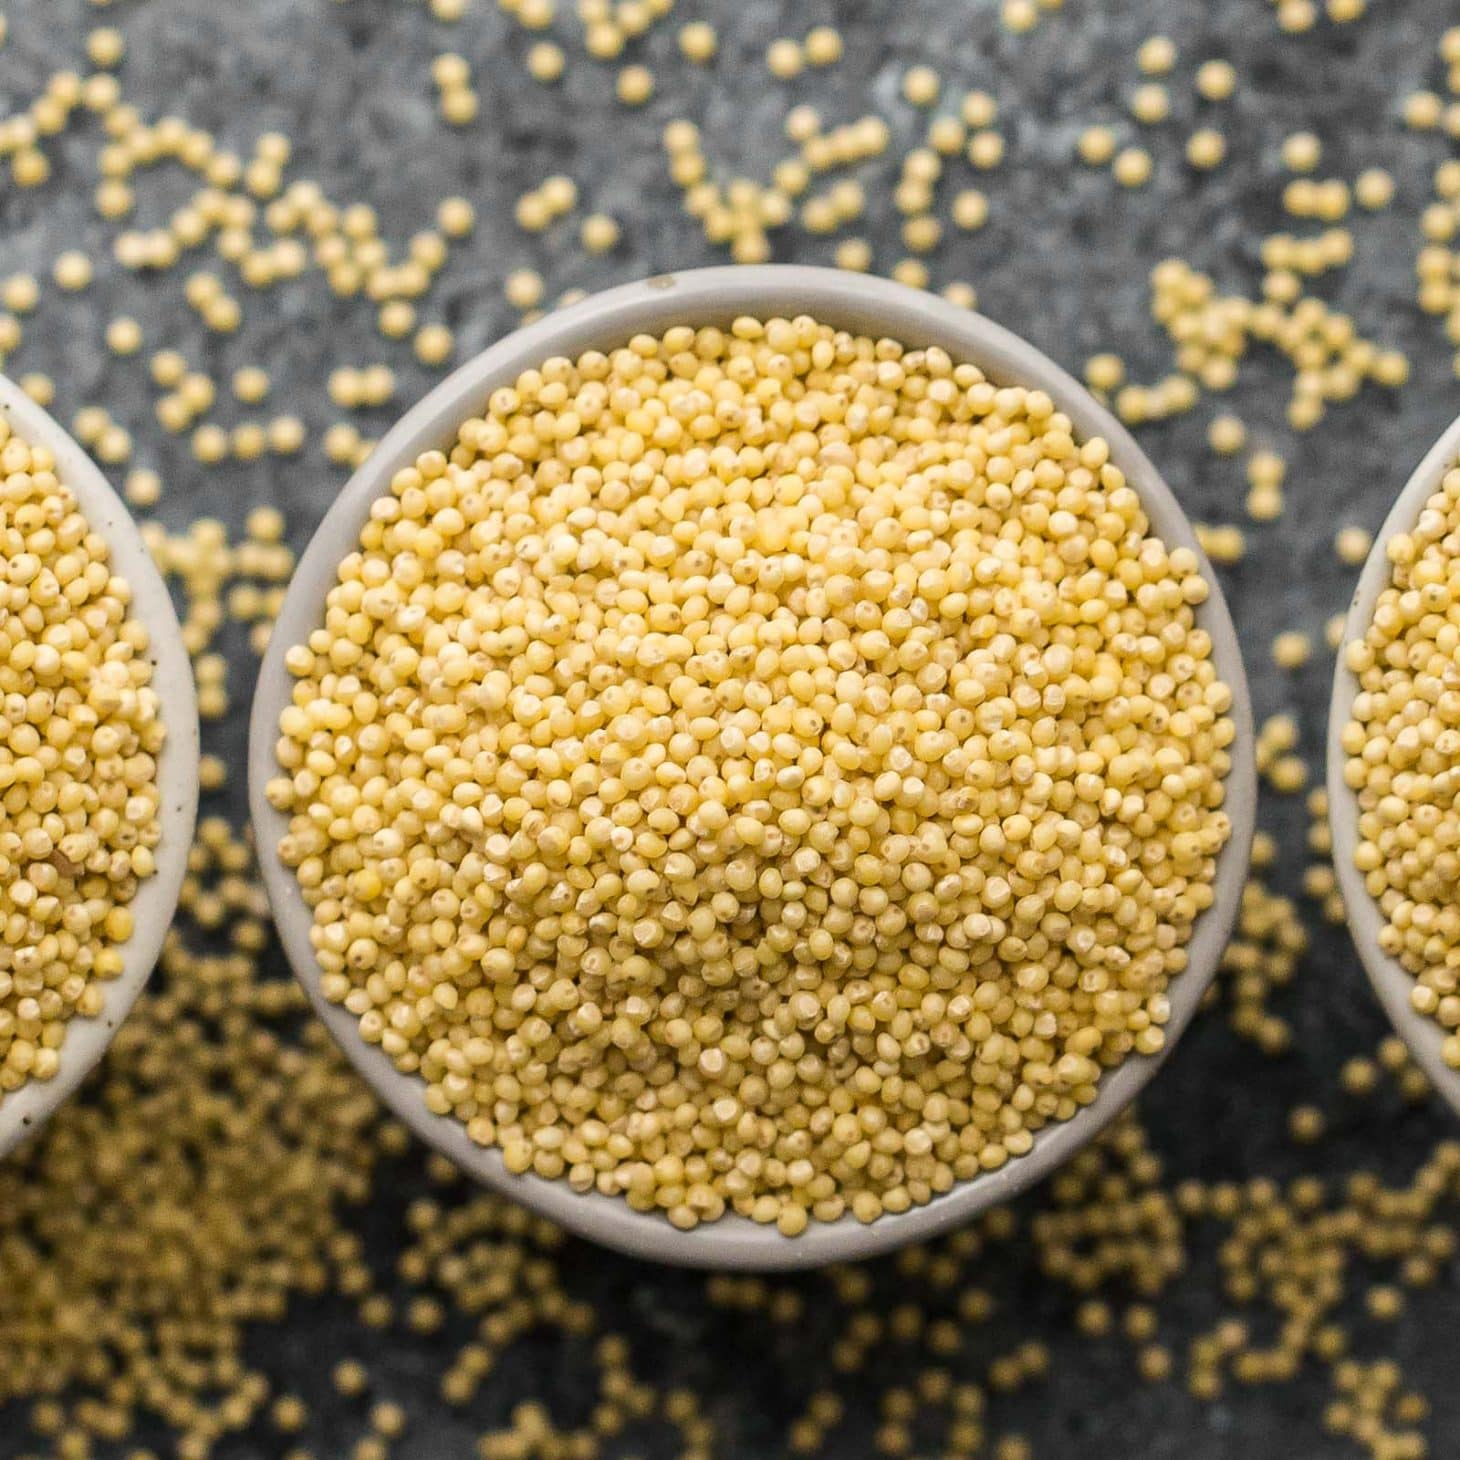 side-angle photo of cooked millet being spooned out of a stainless steel pot-ready to use in millet recipes